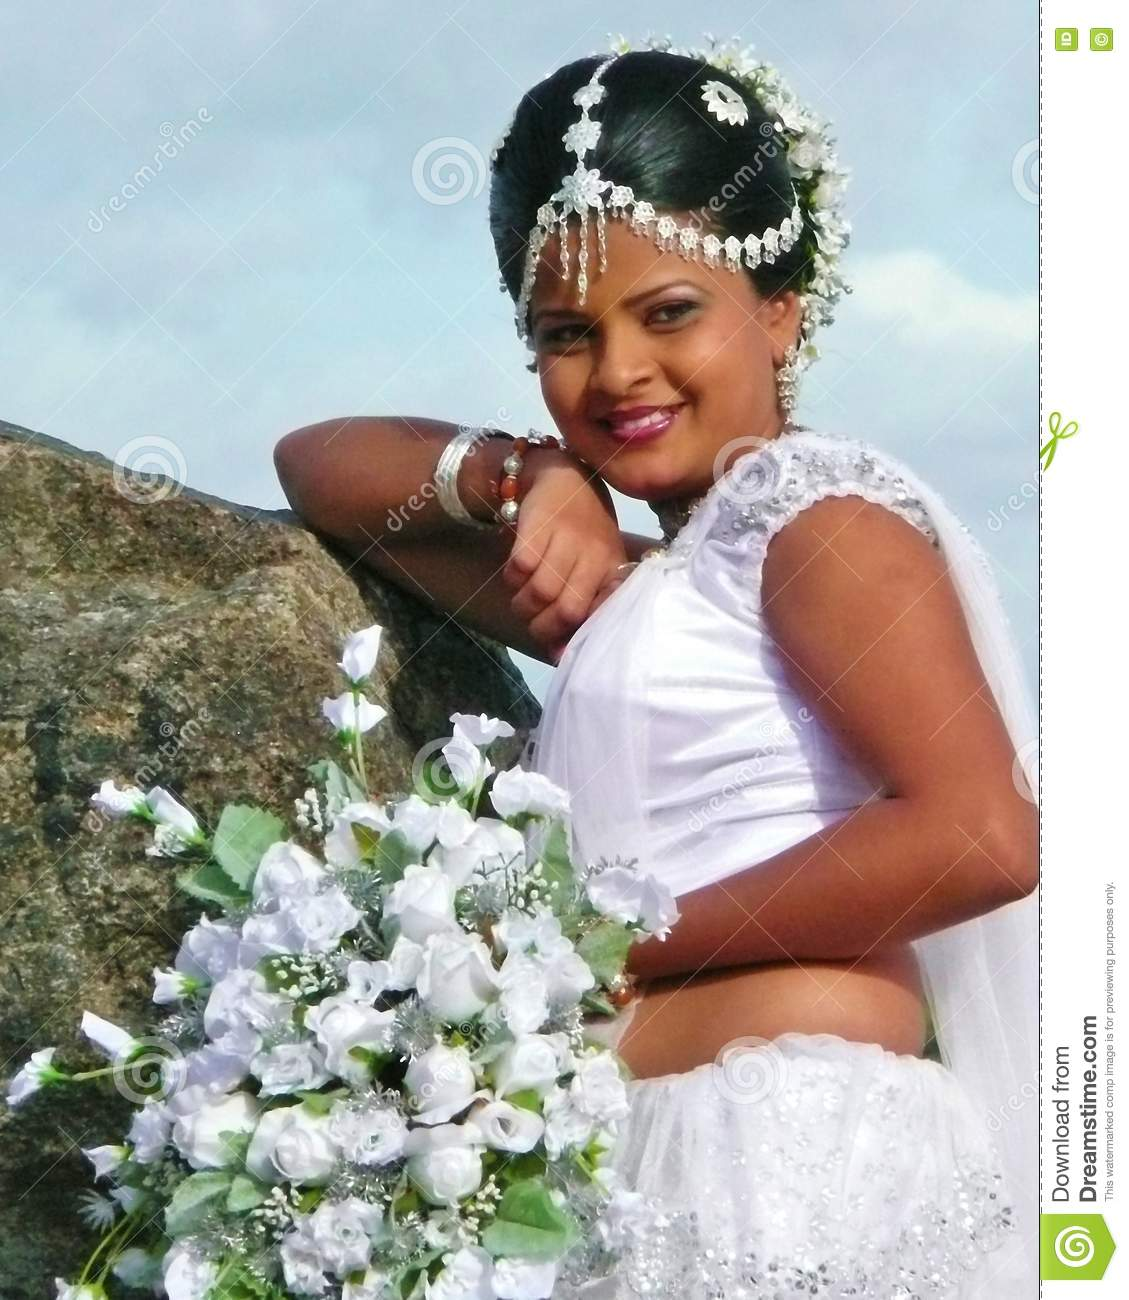 Sri lanka rich bride editorial stock image image of sinhalese sri lanka rich bride izmirmasajfo Image collections